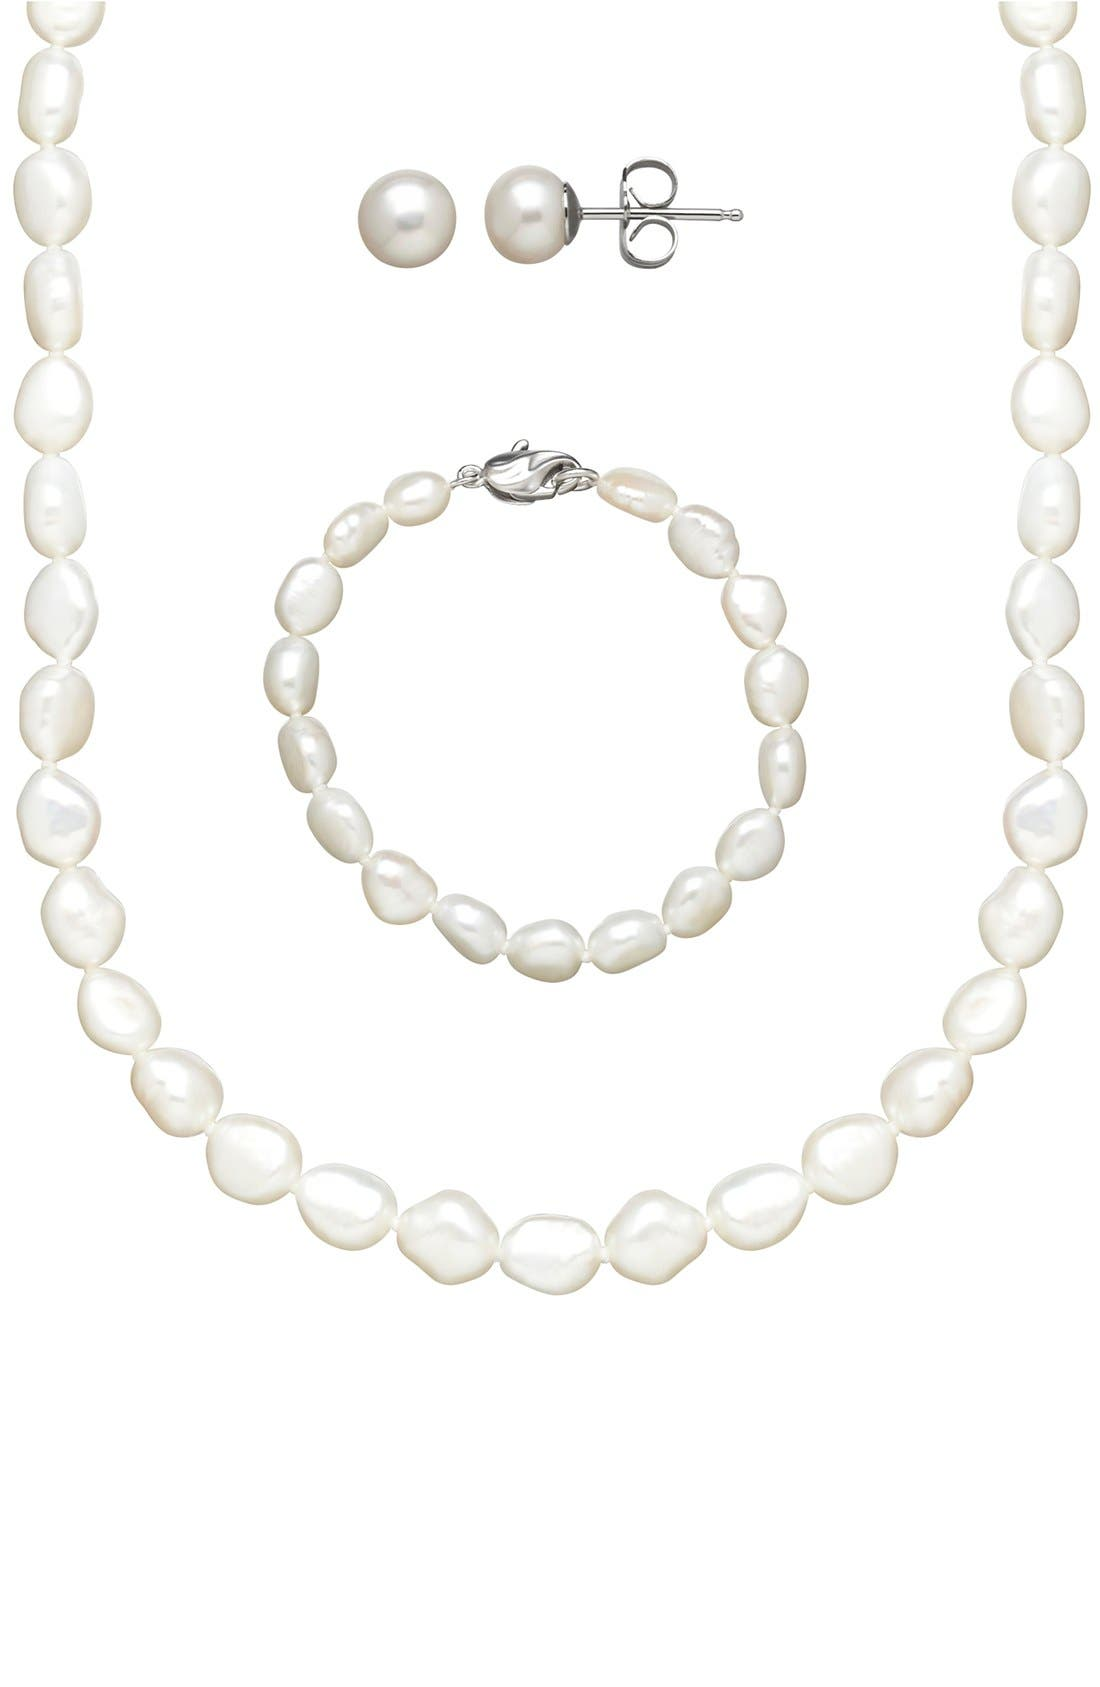 Freshwater Pearl Necklace, Bracelet & Earrings,                             Main thumbnail 1, color,                             100